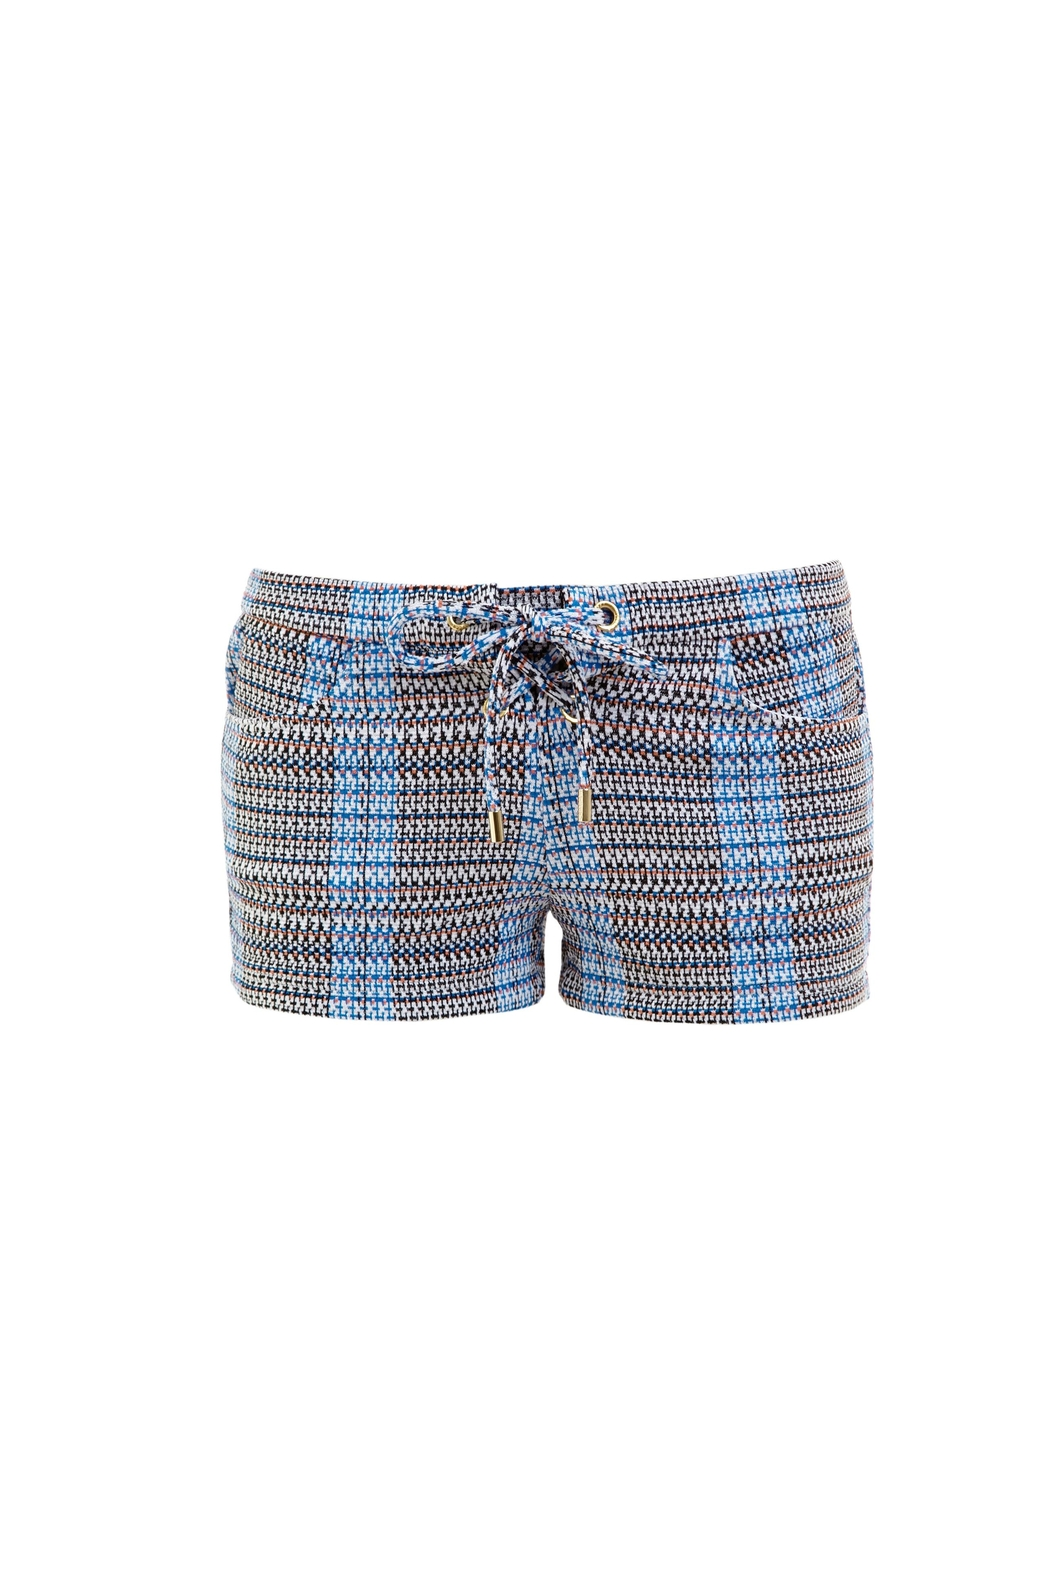 Melissa Odabash Shelly Shorts Riviera - Main Image